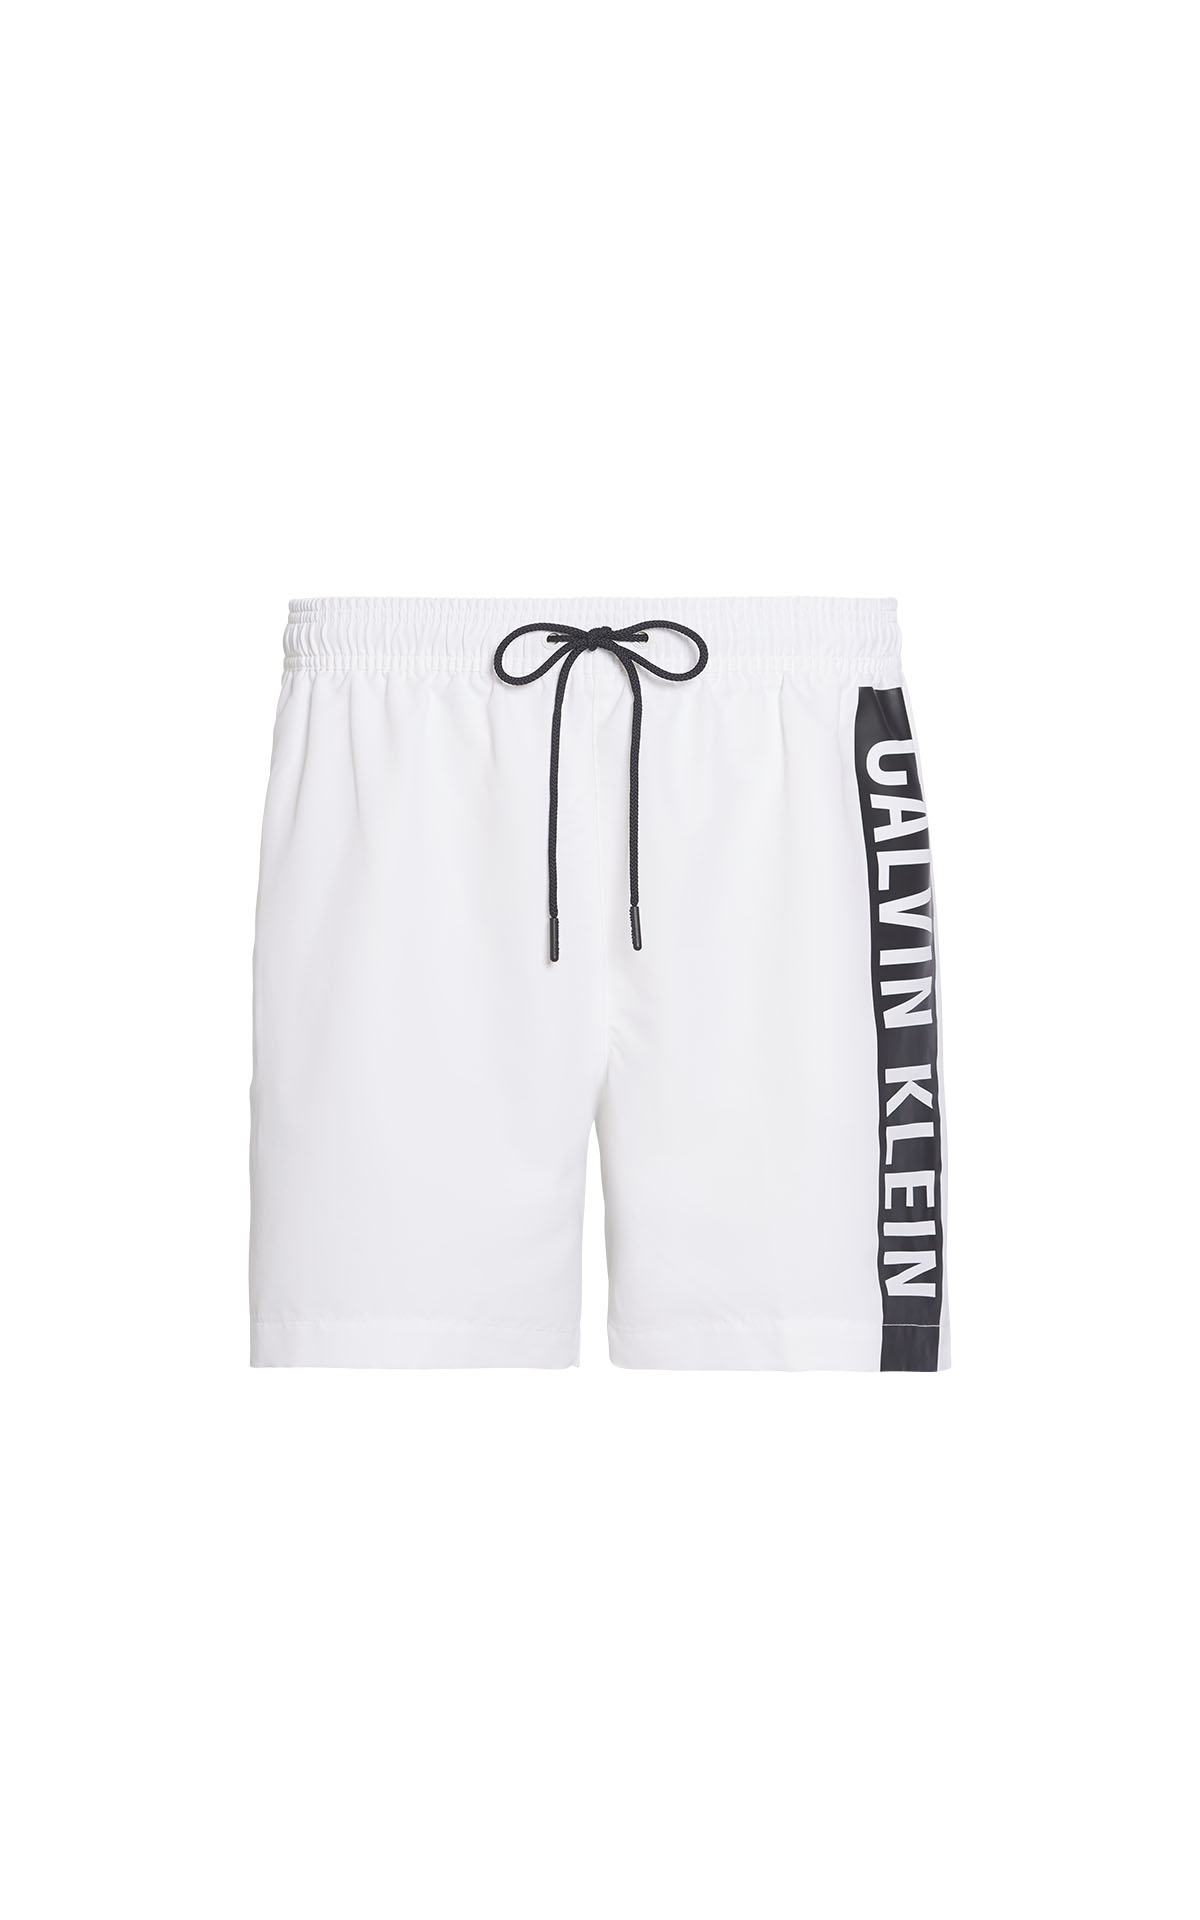 Calvin Klein Medium Drawstring ycd at the Bicester Village Shopping Collection